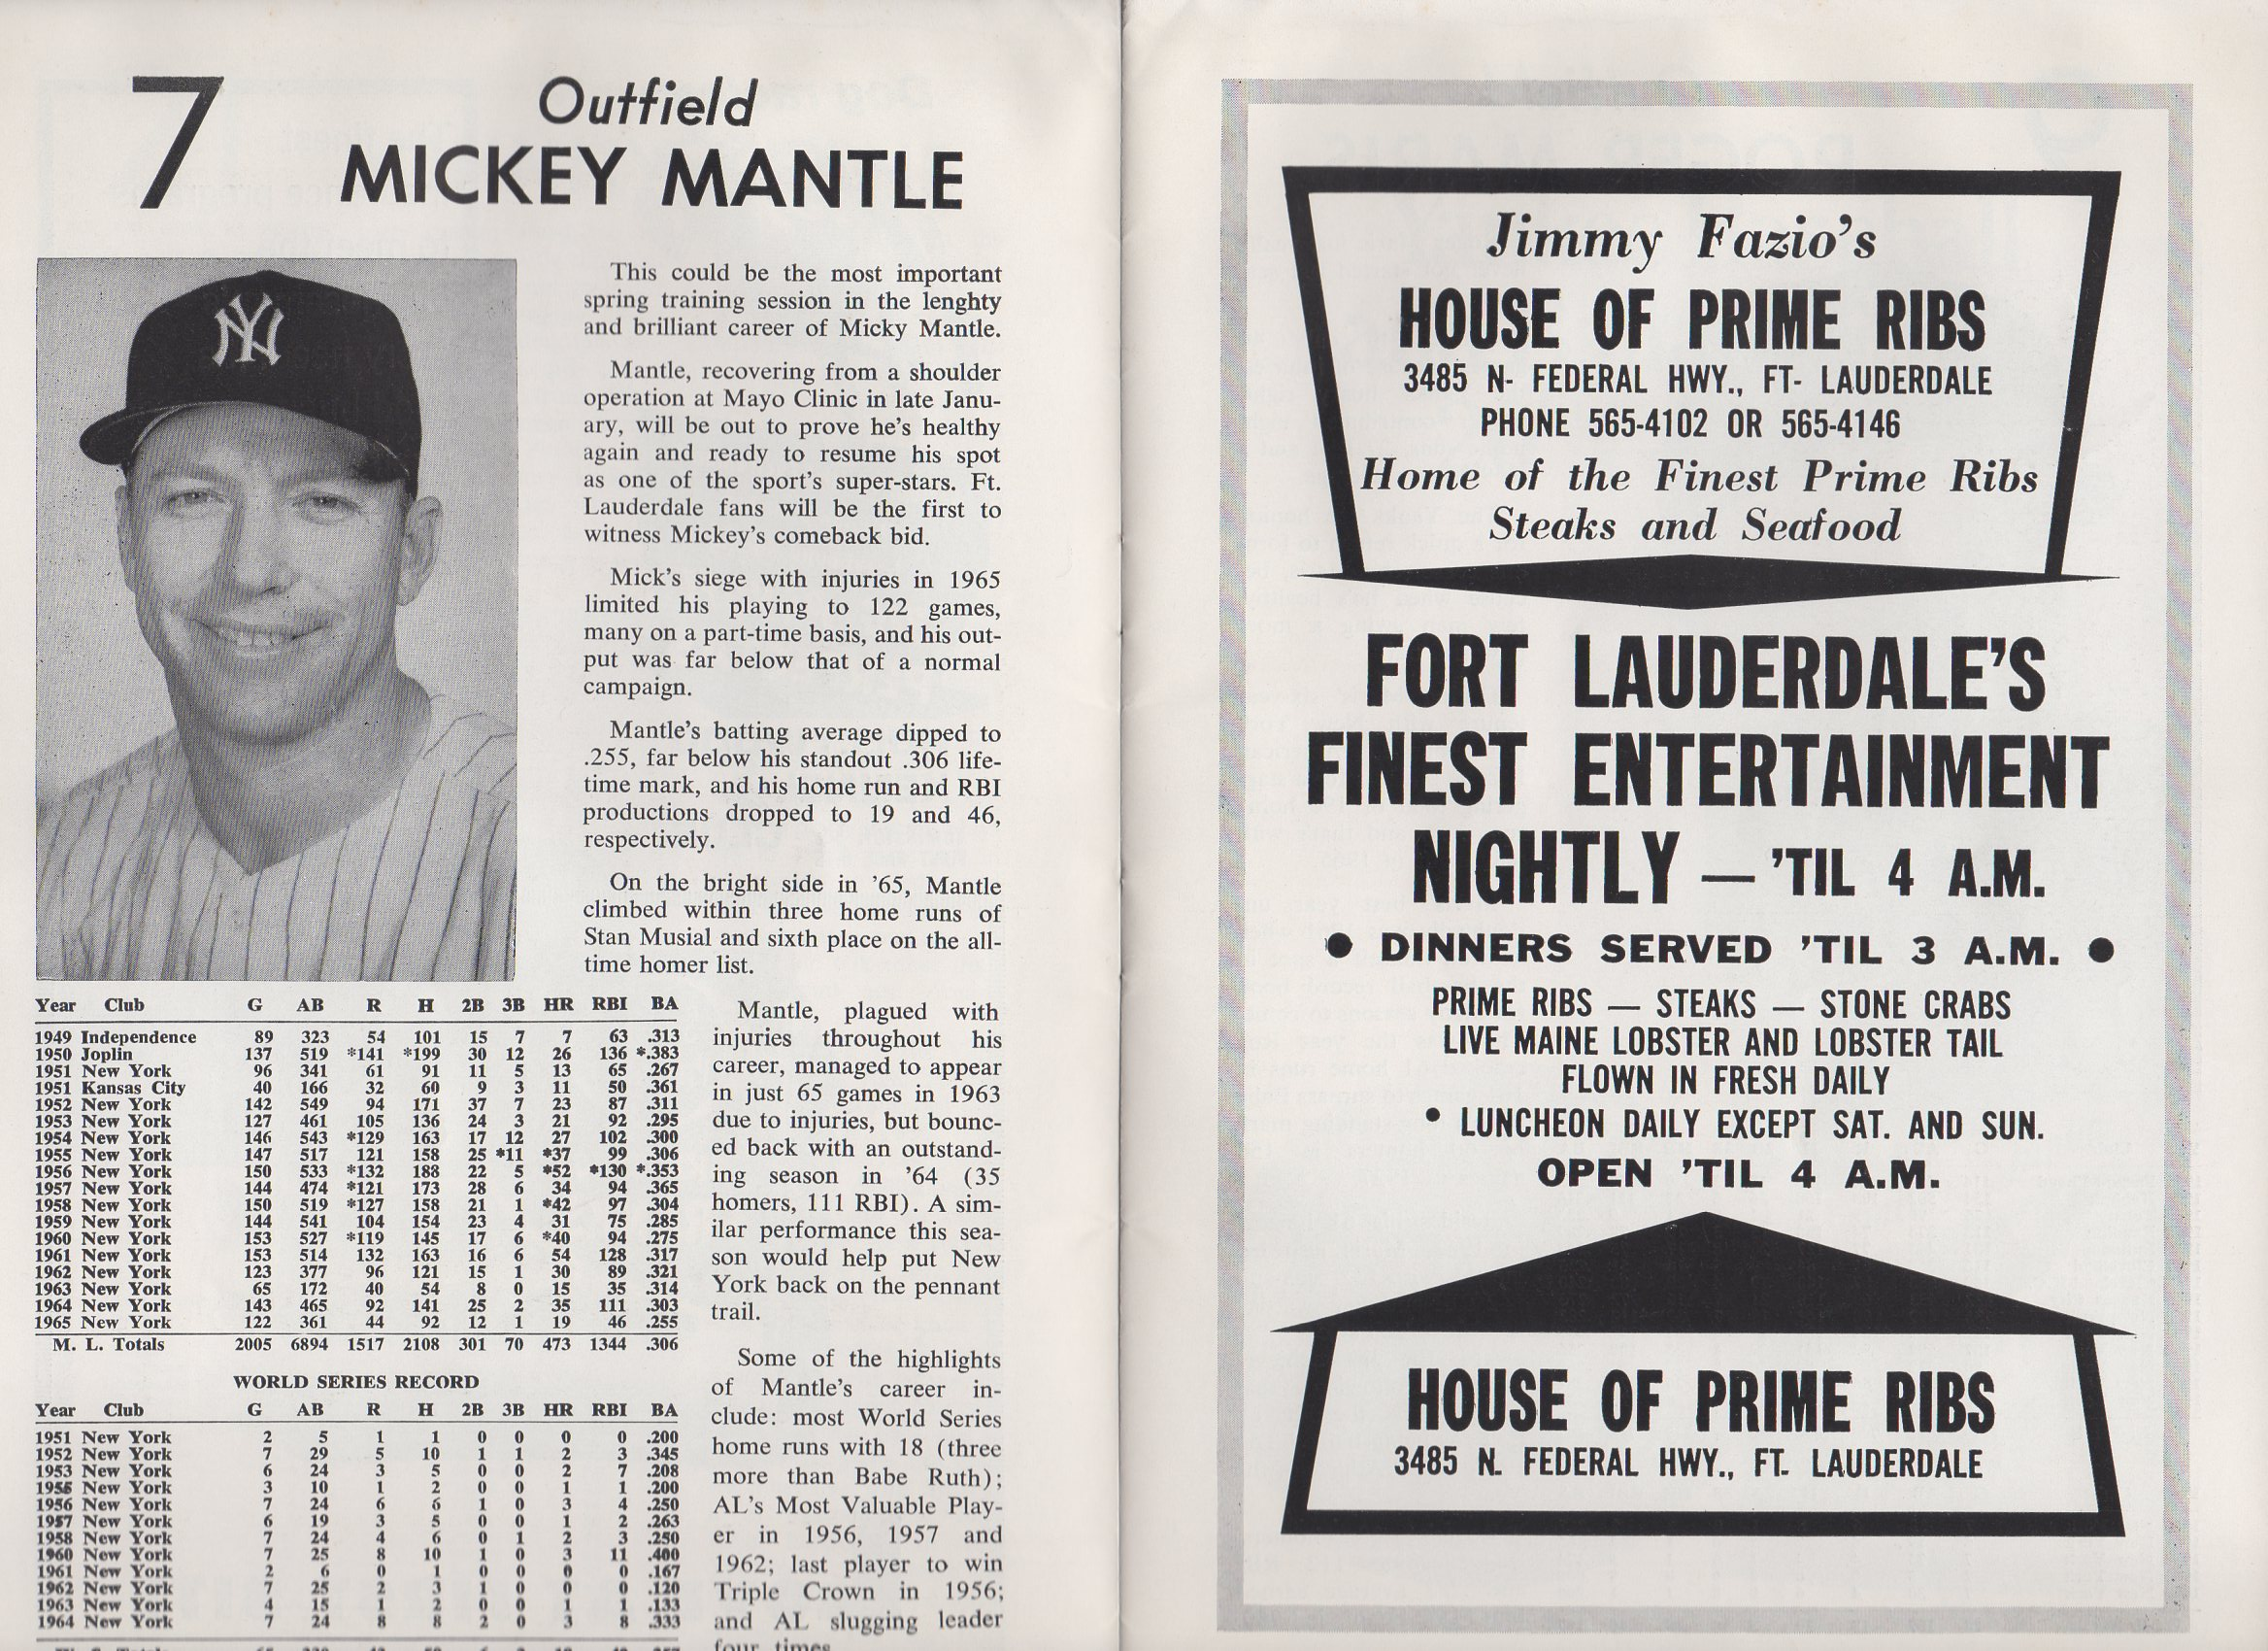 1966 yankees official spring guidebook program, ft. lauderdale, fl.